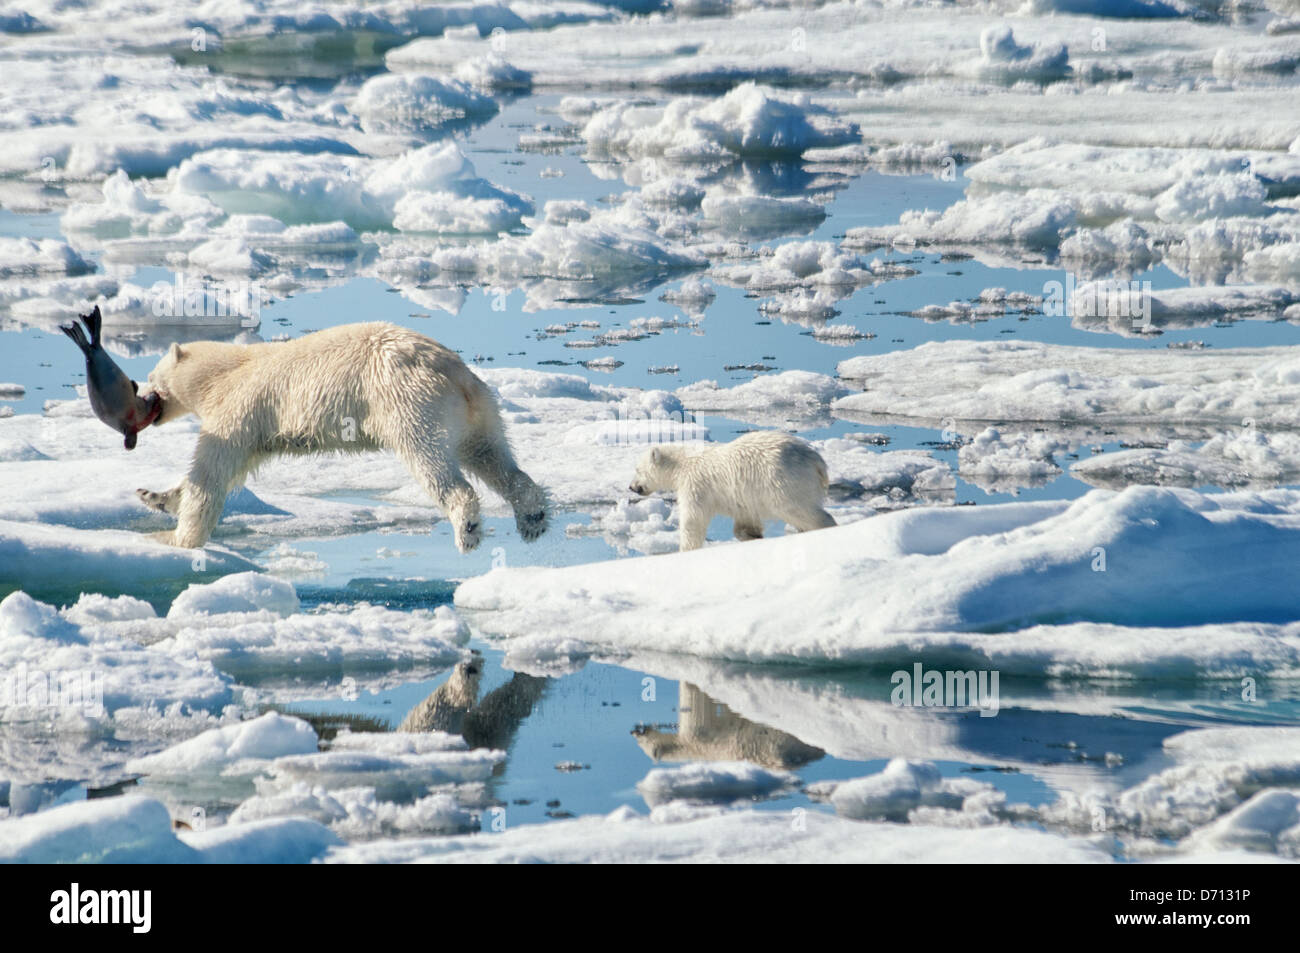 #6 in a series of images of a mother Polar Bear, Ursus maritimus, stalking a Seal to feed her twin Cubs, Svalbard, - Stock Image